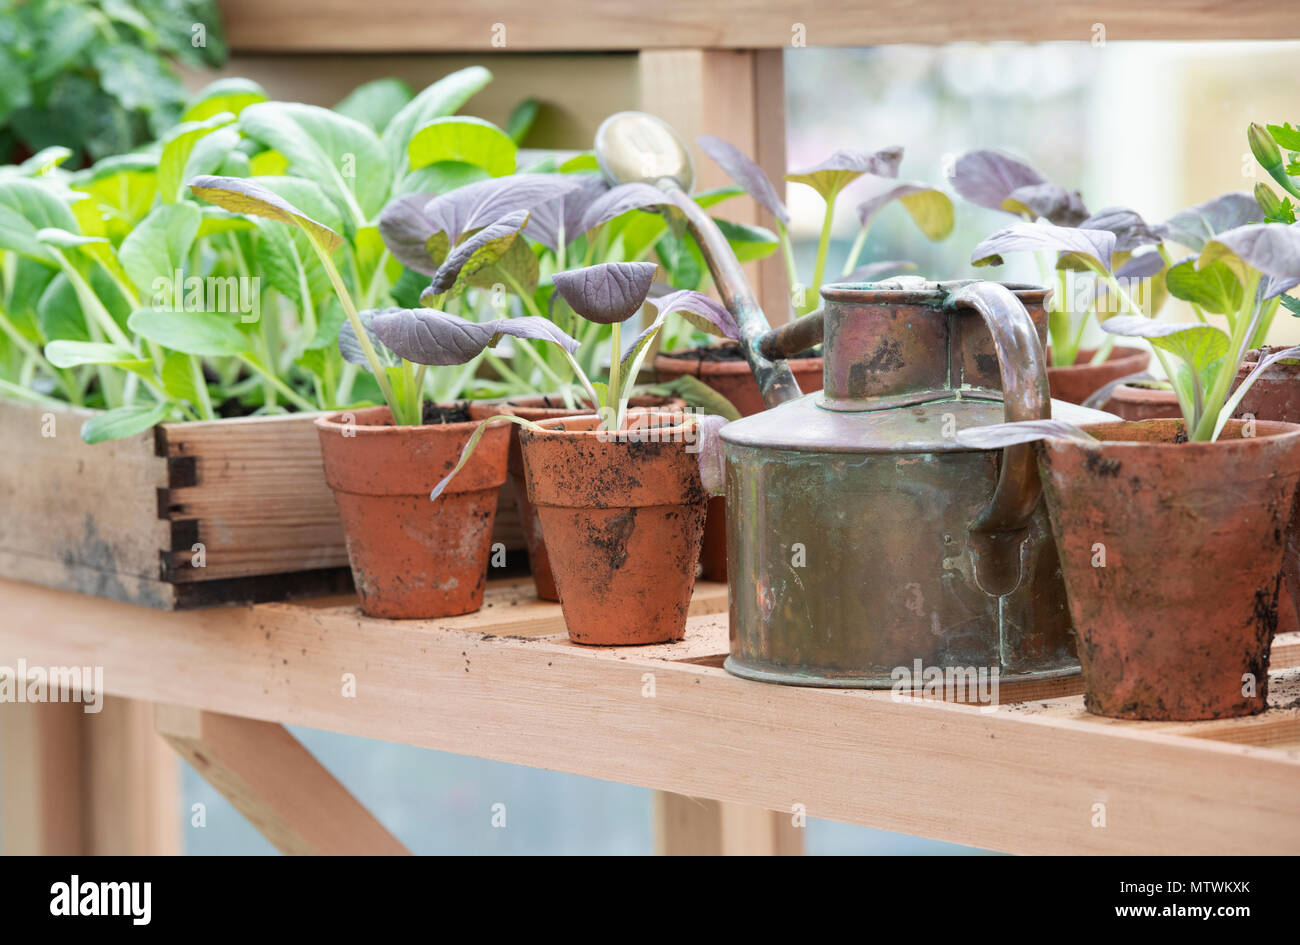 Potted plants and an old watering can inside a greenhouse in spring. UK - Stock Image